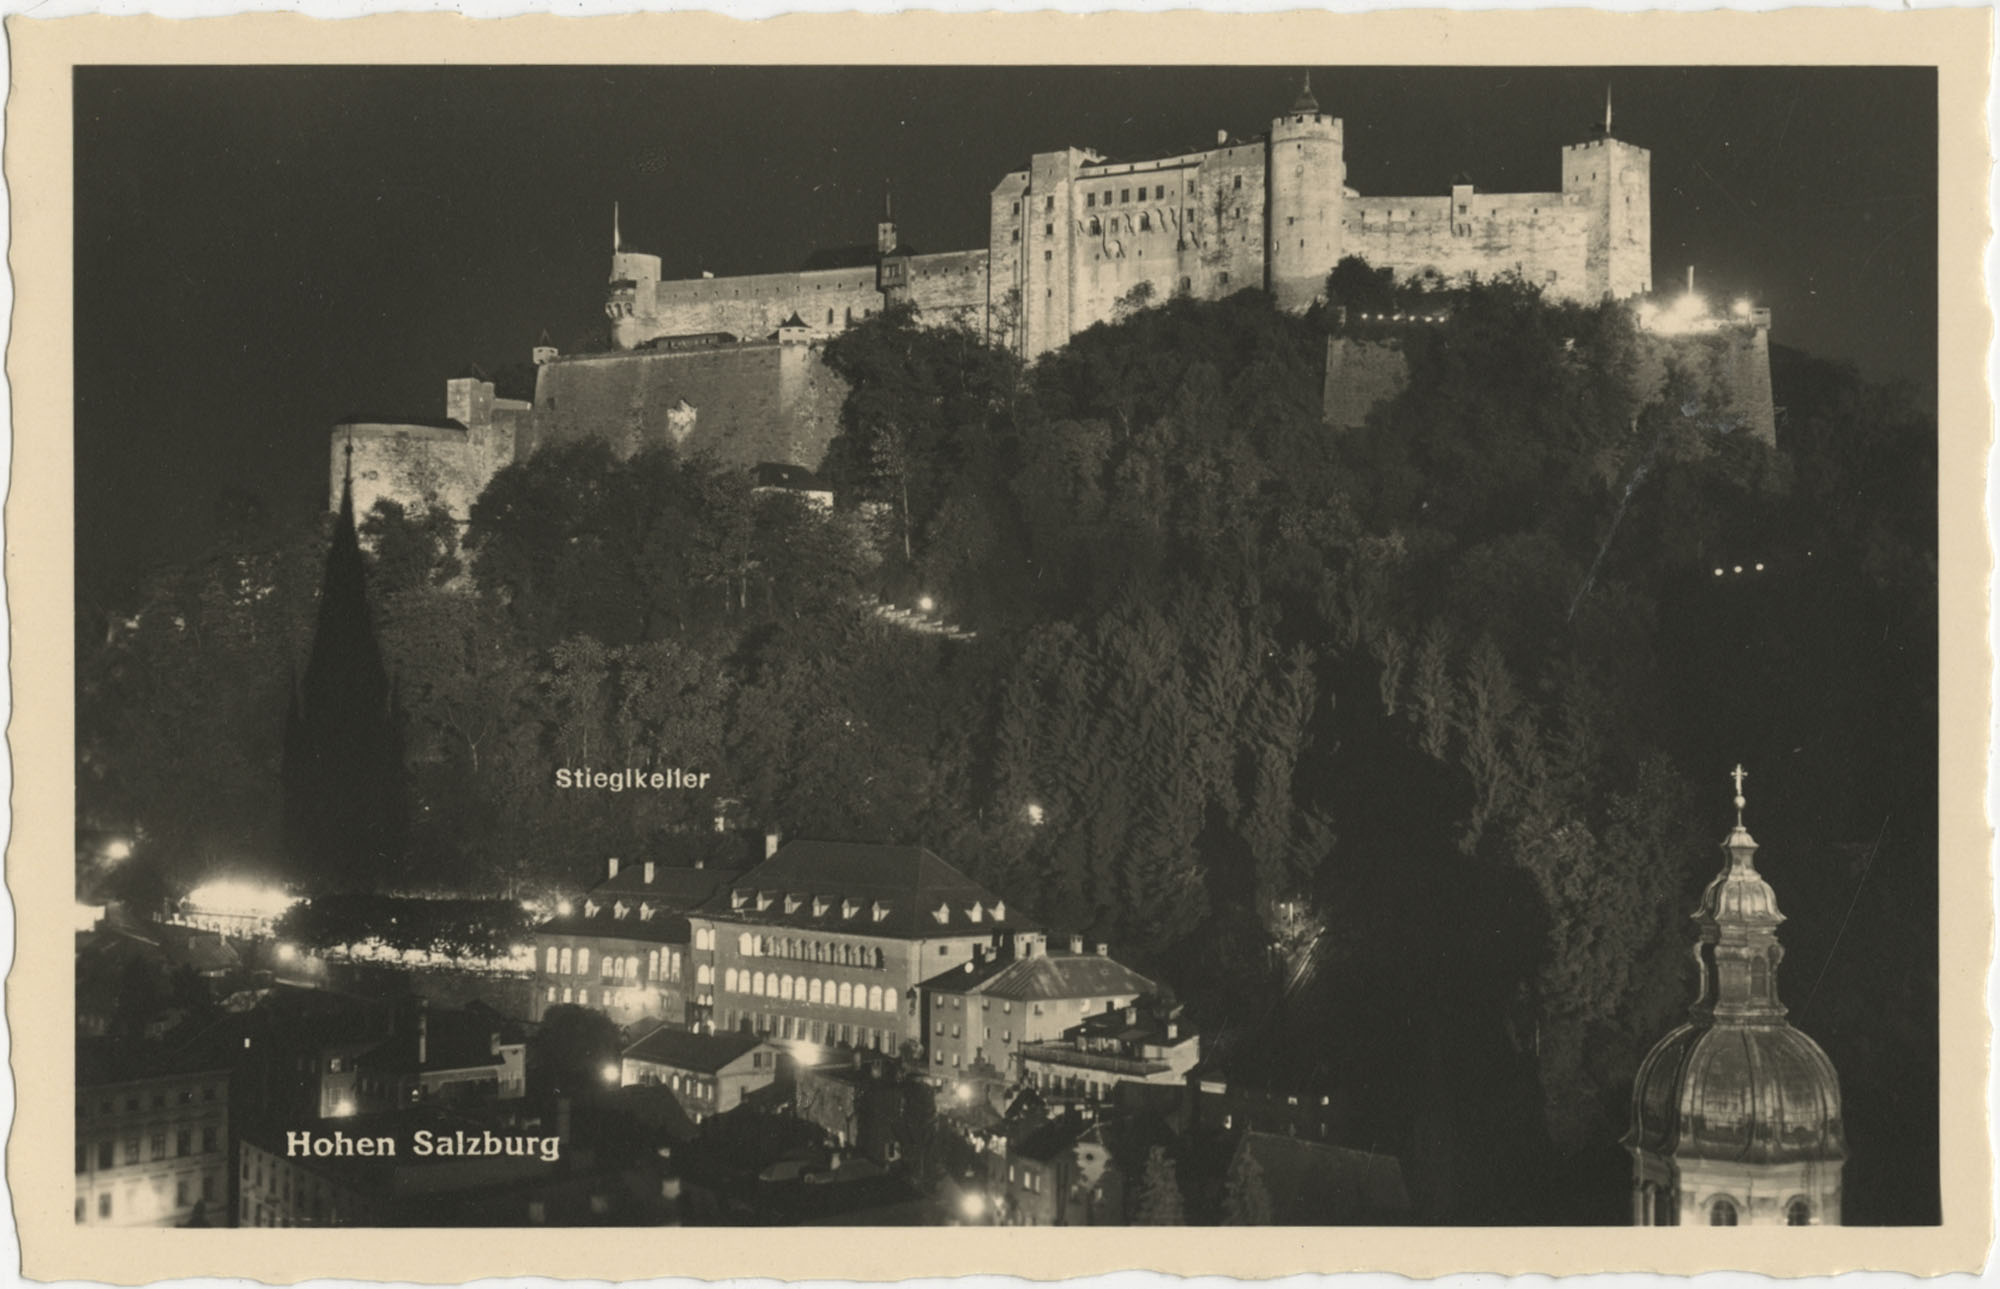 Mirabell Palace in Salzburg, Austria, Photograph 2